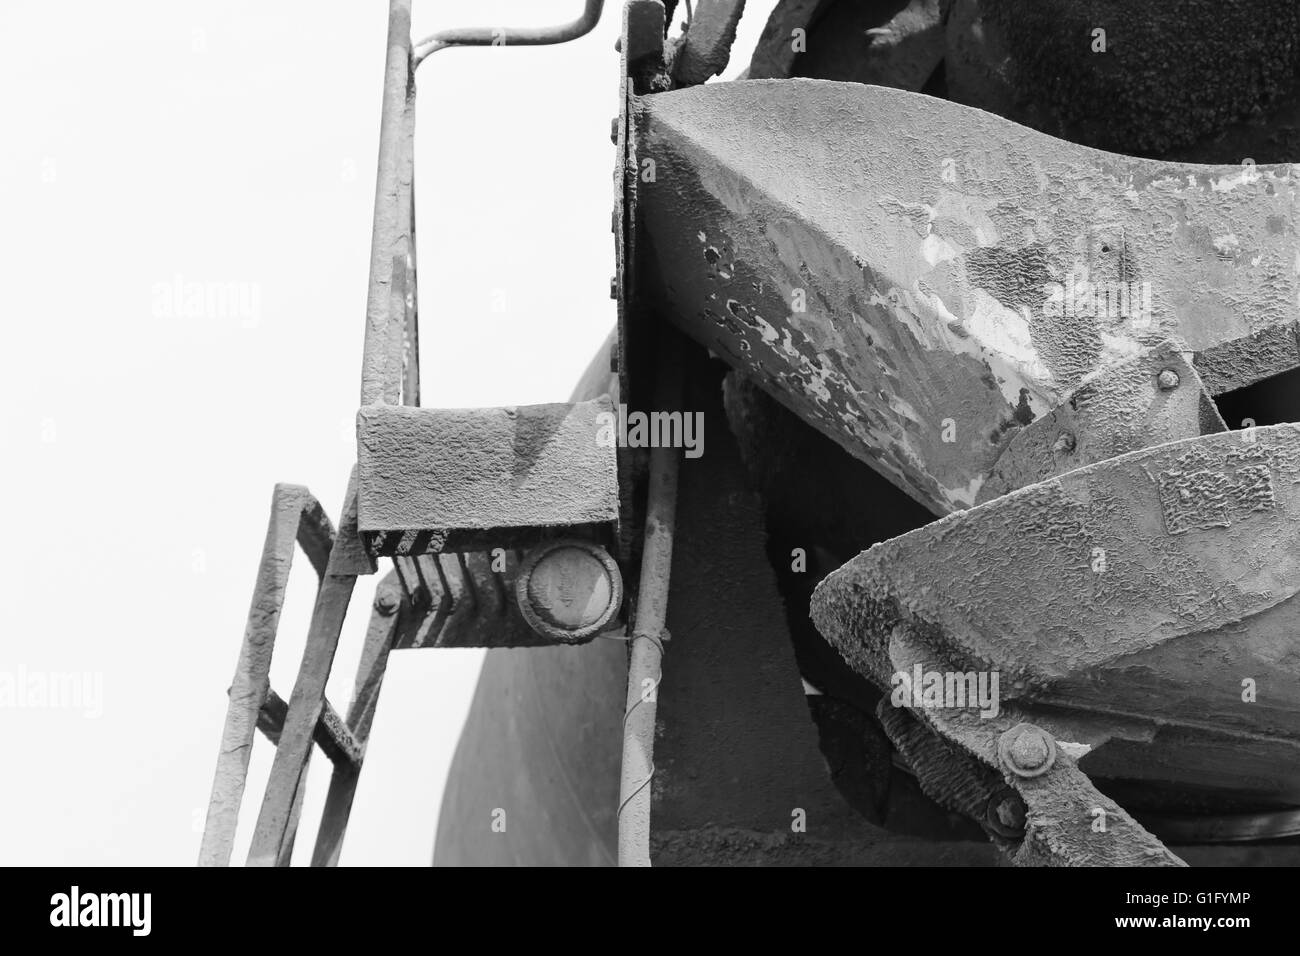 black and white detail of a concrete mixer truck parts - Stock Image